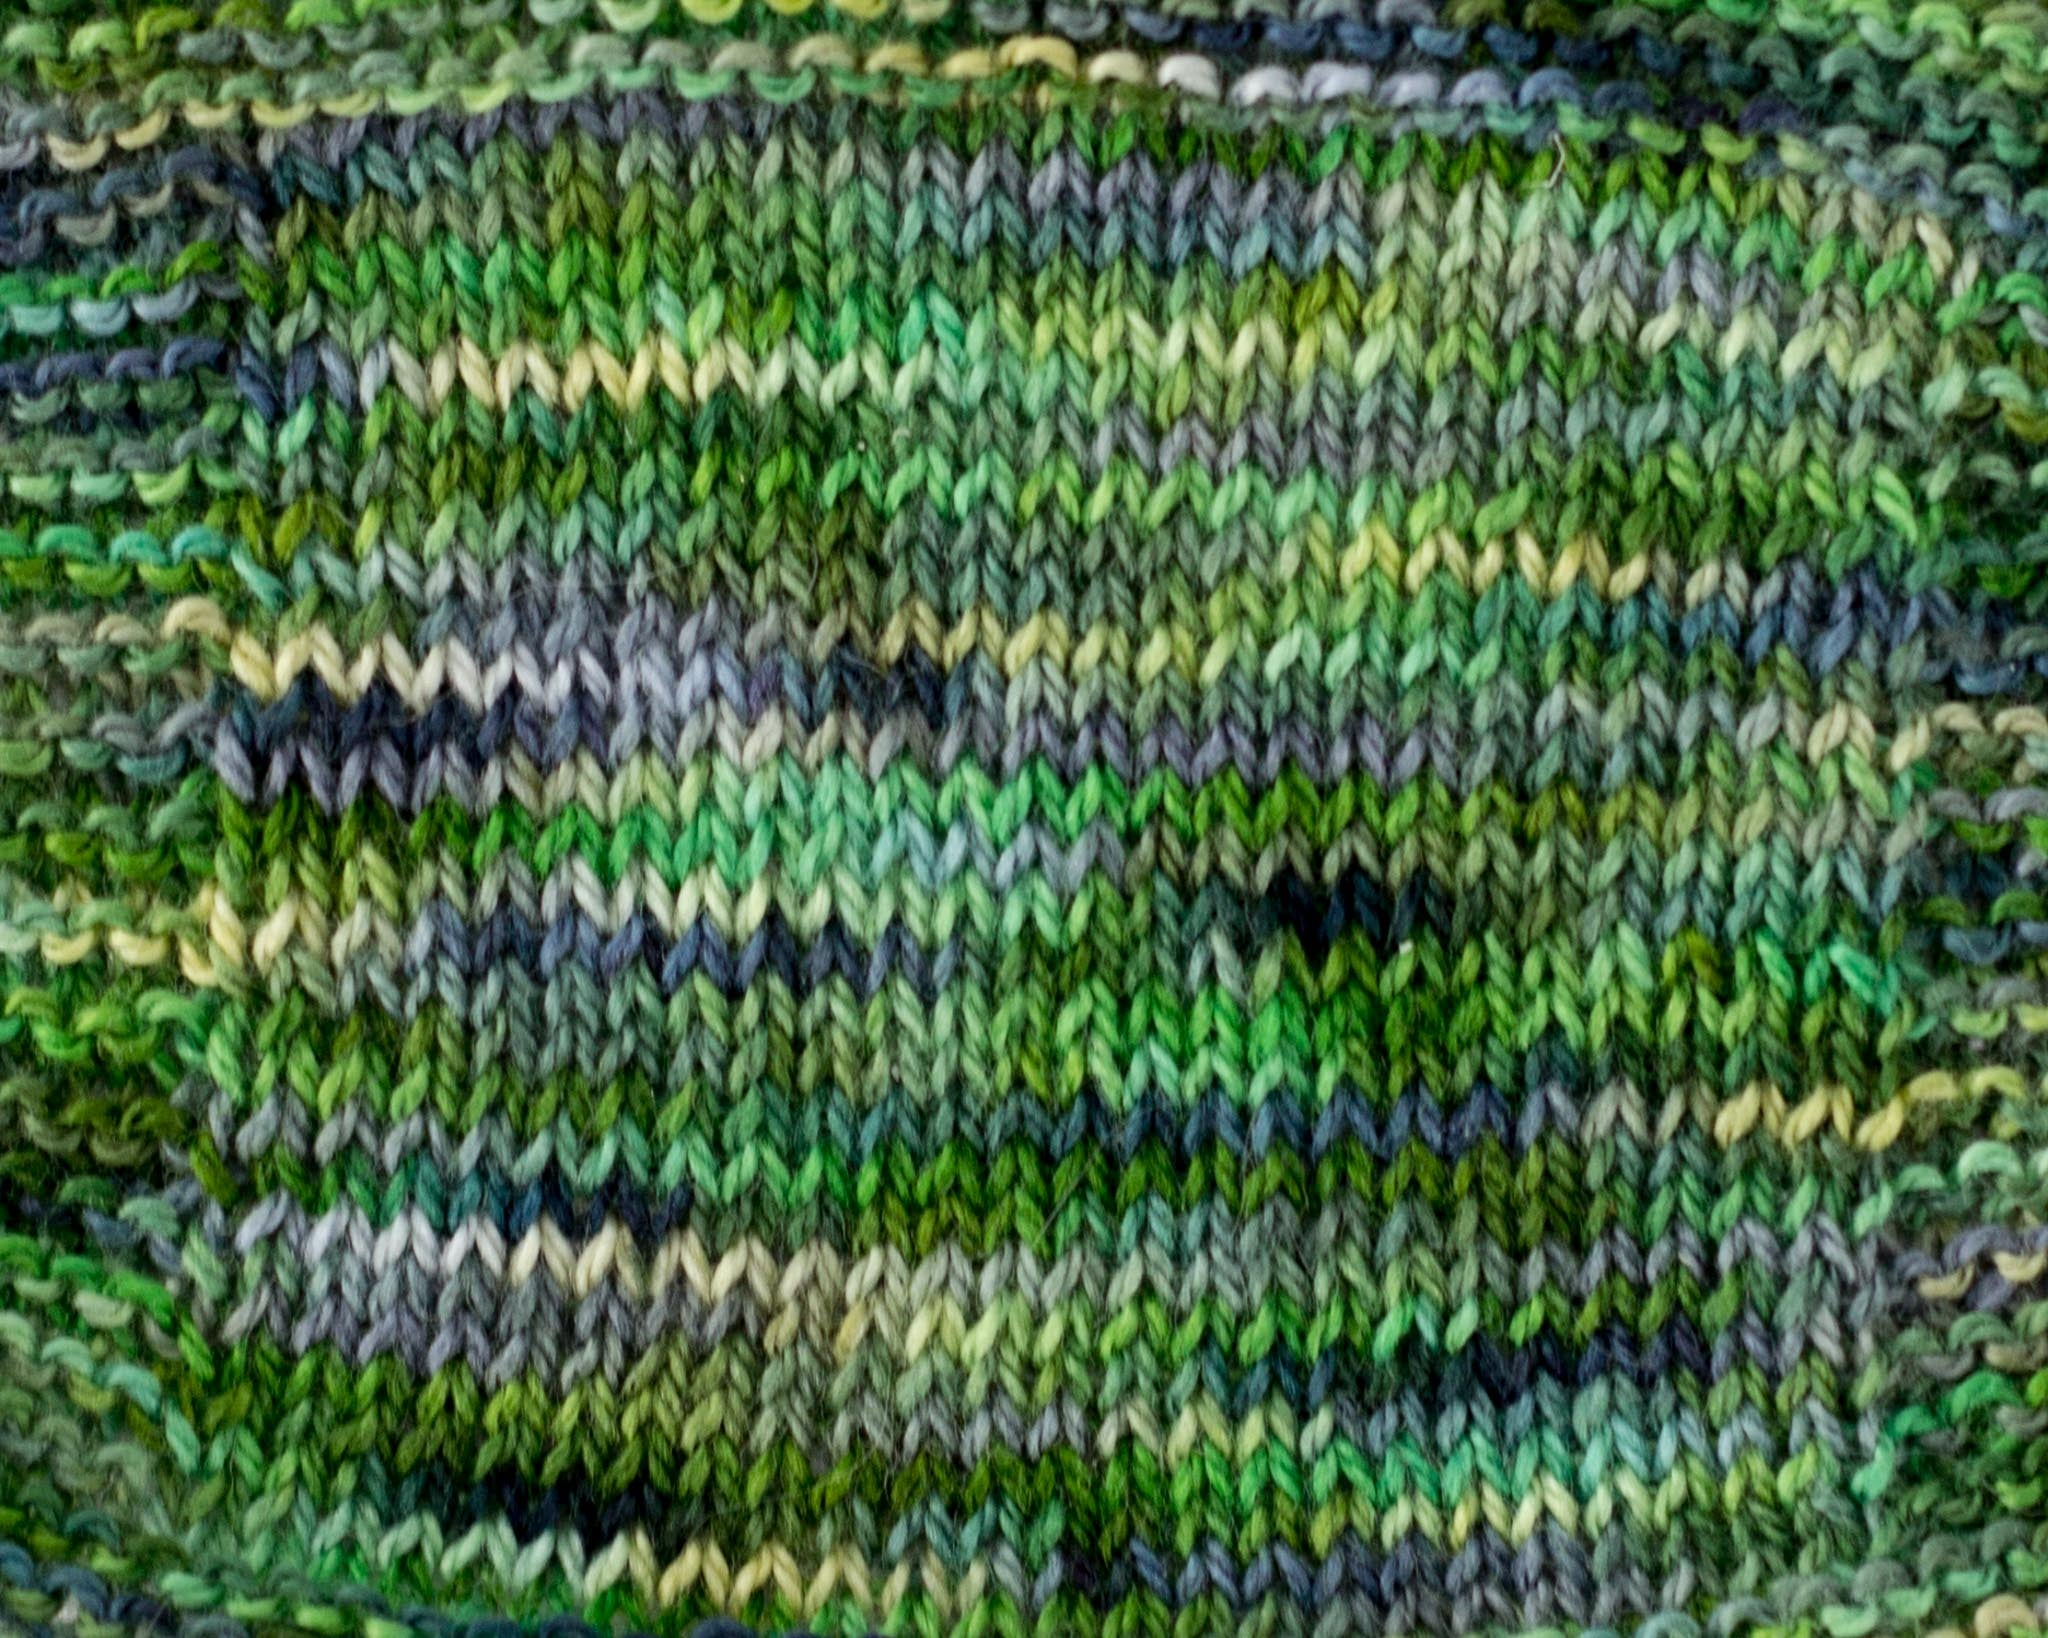 Organic & Fair Trade Cotton Yarn-Green, Grey, and Yellow Swatch